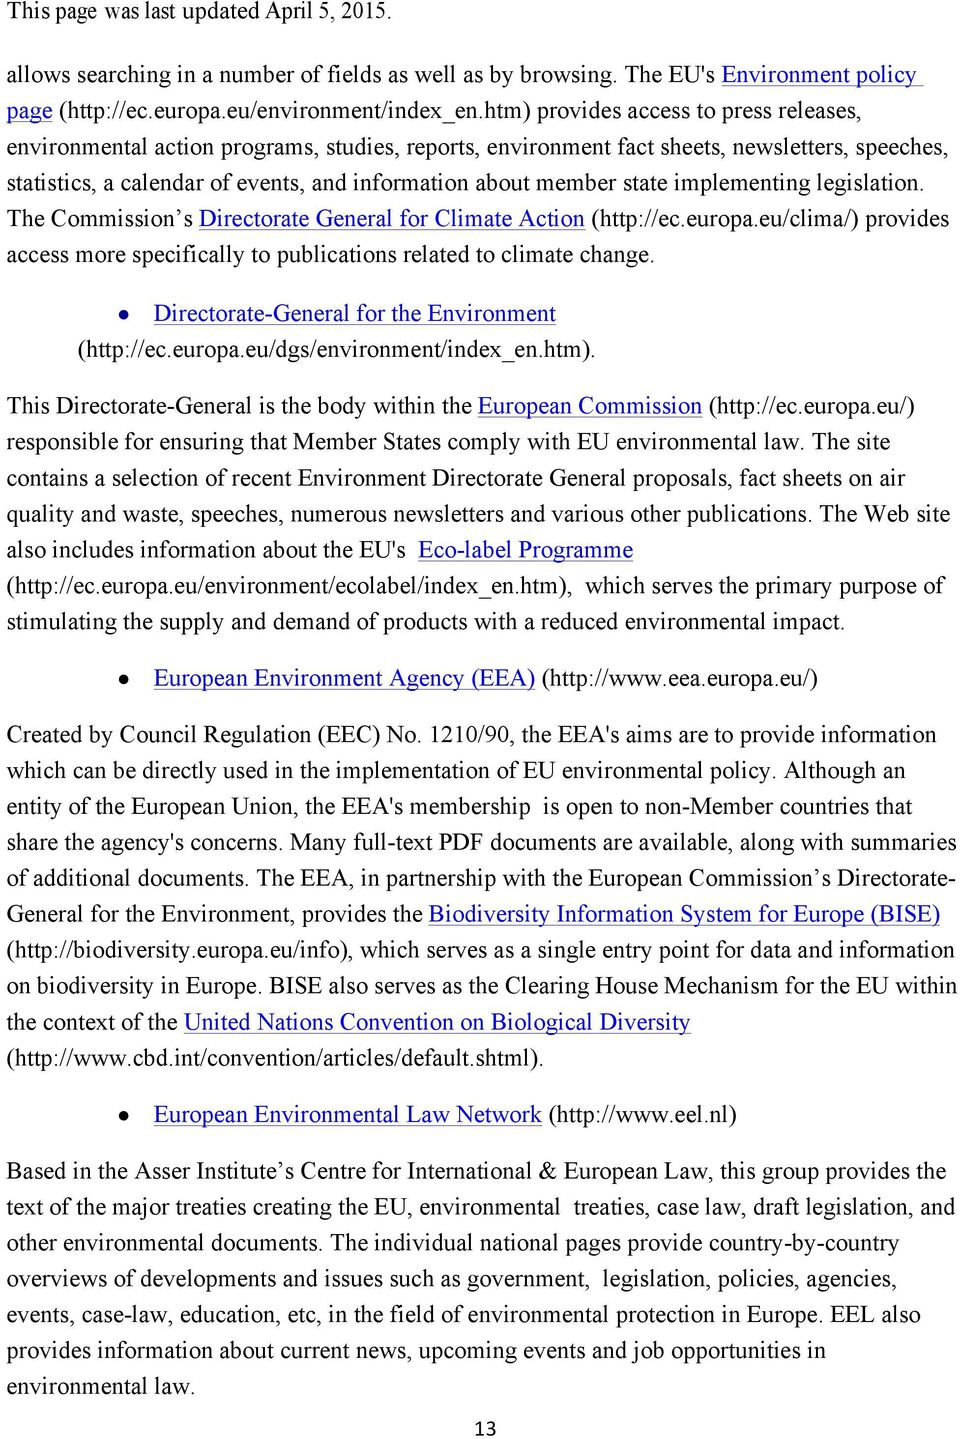 state implementing legislation. The Commission s Directorate General for Climate Action (http://ec.europa.eu/clima/) provides access more specifically to publications related to climate change.